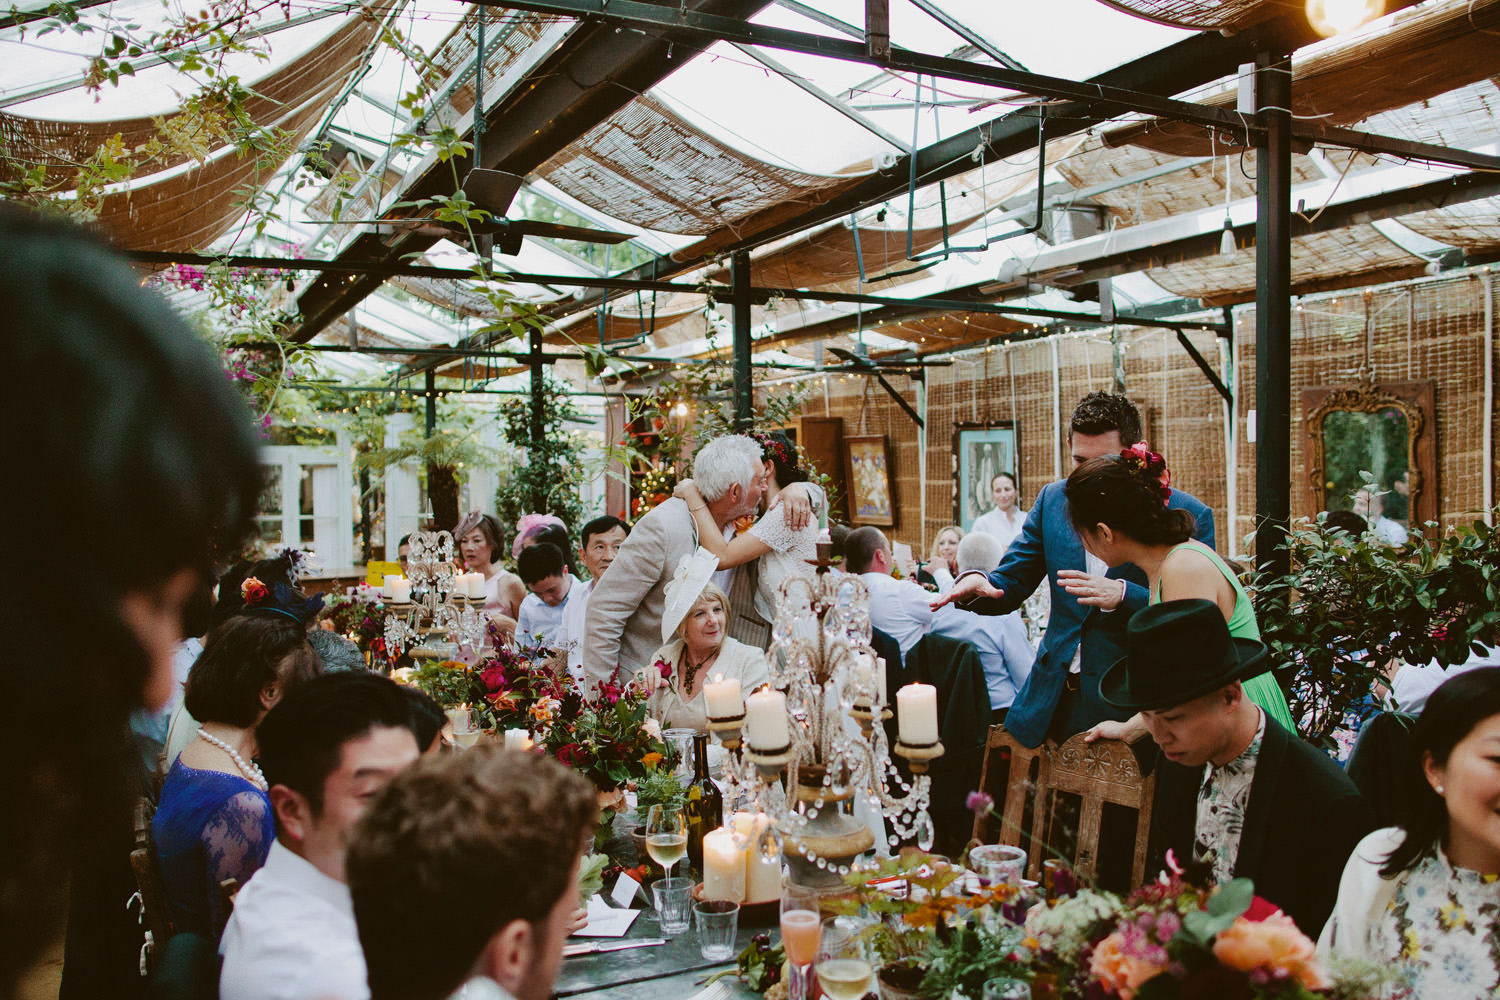 petersham-nurseries-092